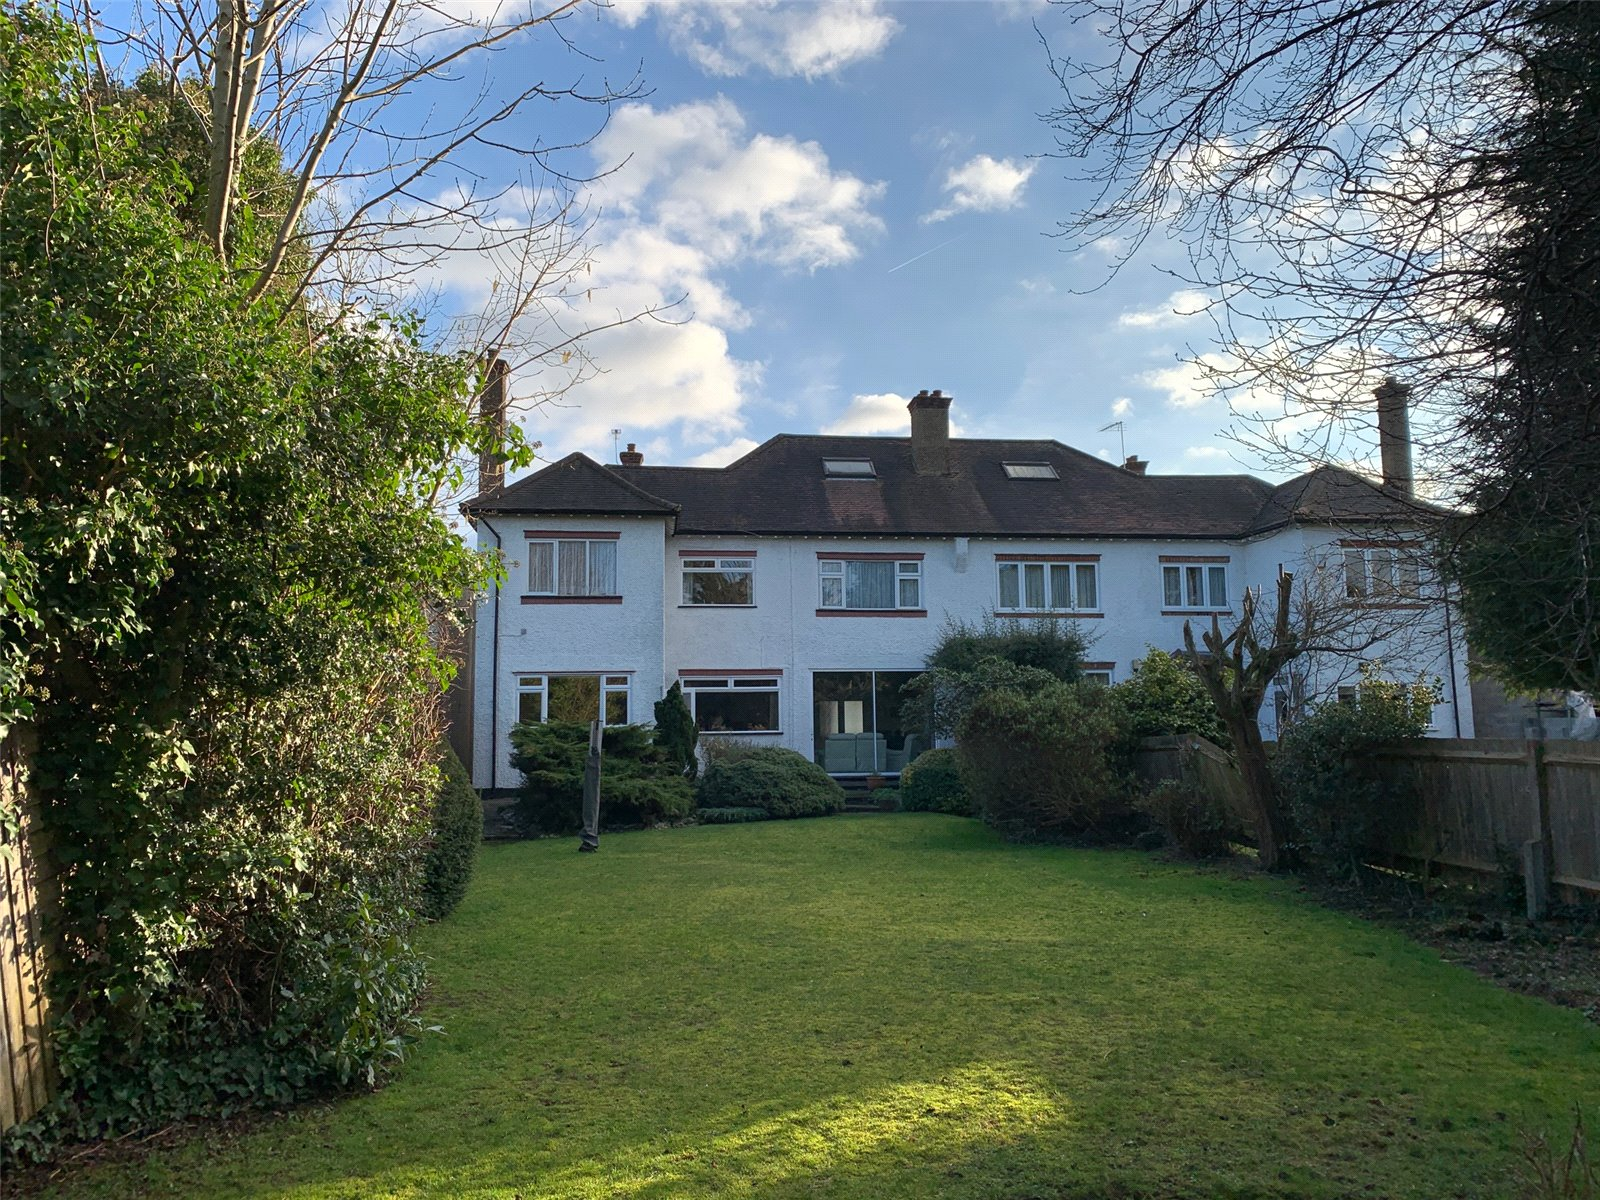 4 bed house for sale in Whetstone, N20 9ED 5